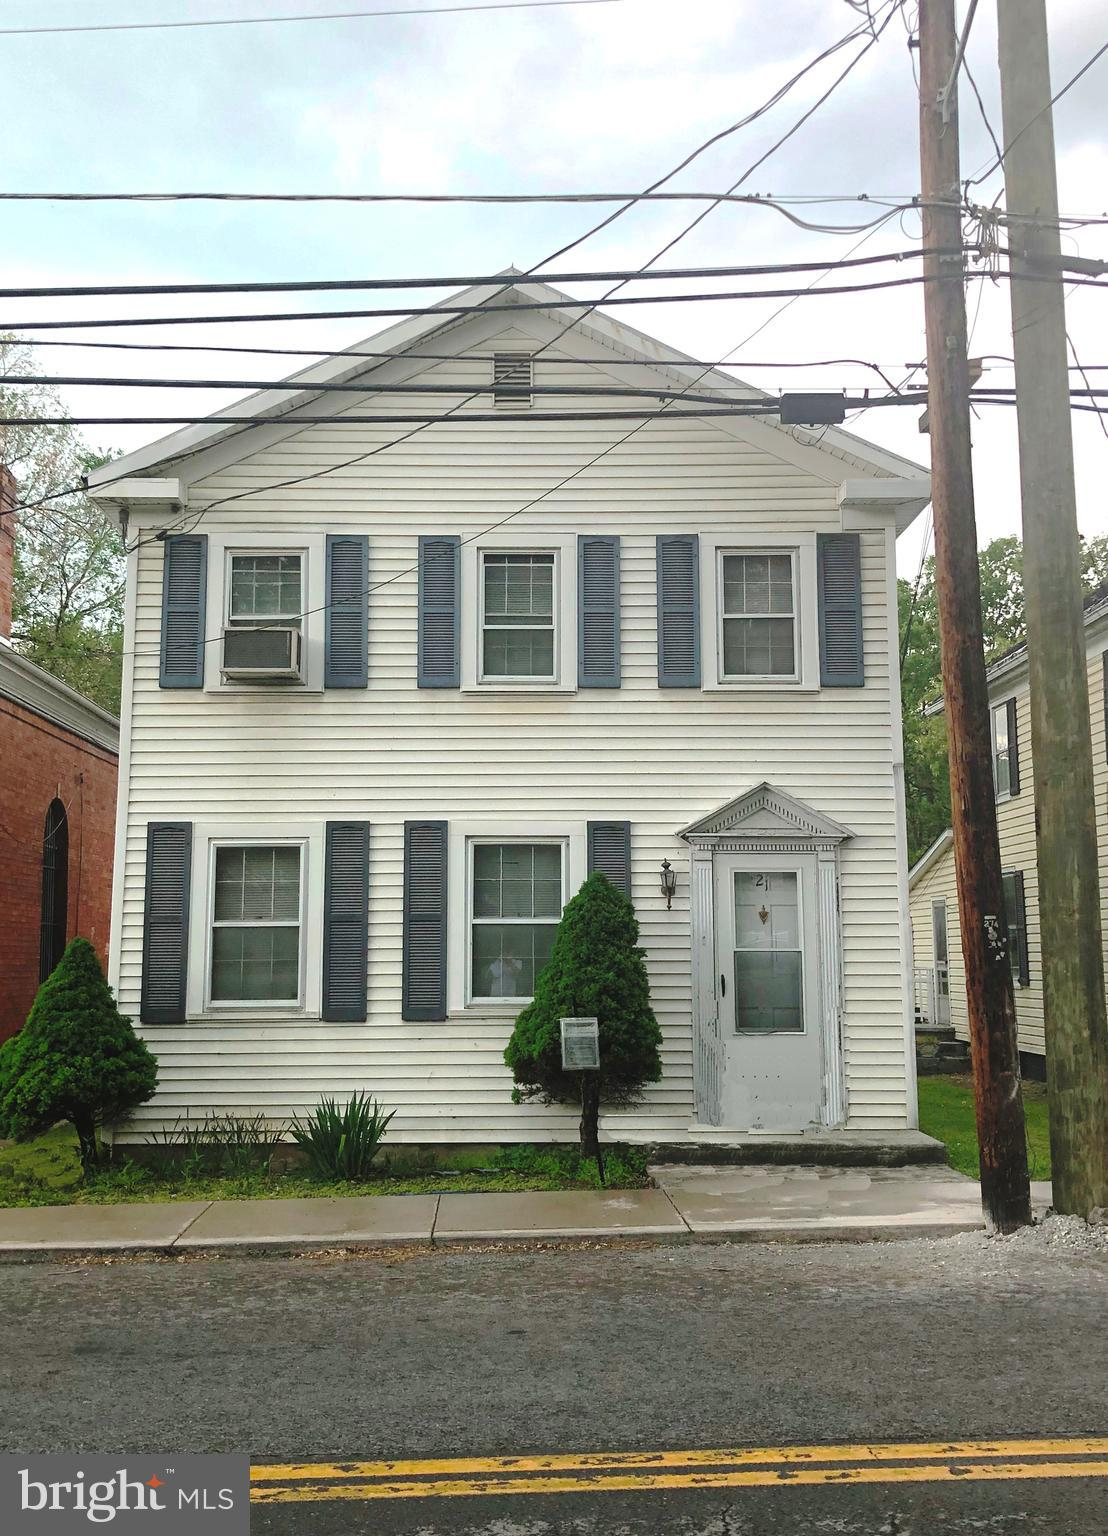 2 BR 1.5 BA house located on Main Street in Boycewith an eat-in kitchen, living room, dining room. A